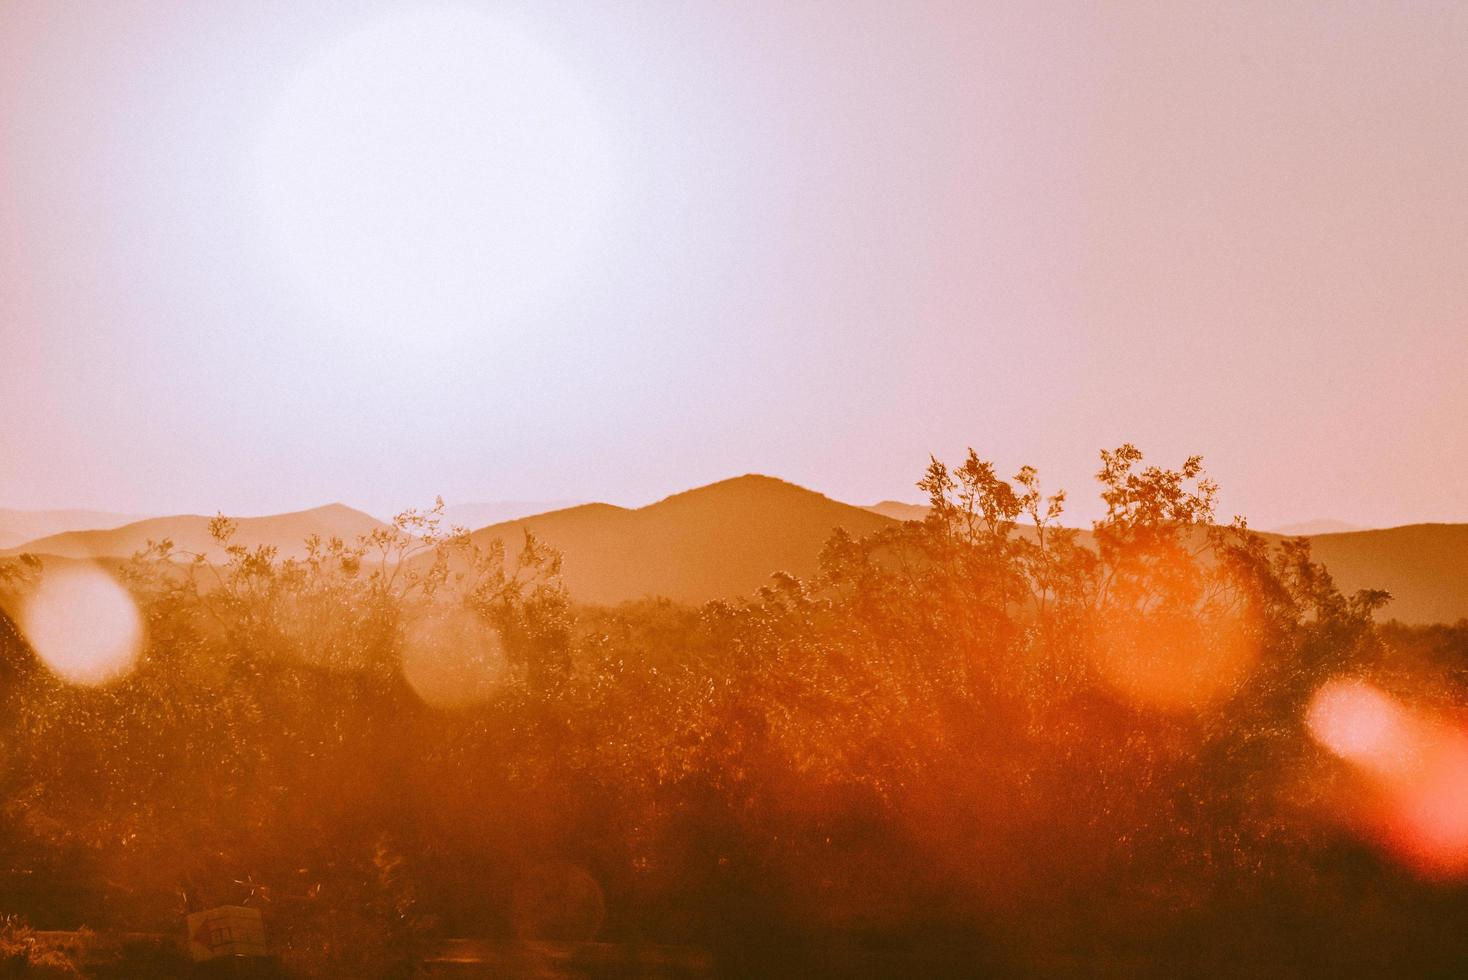 Brown trees and mountains during sunset photo